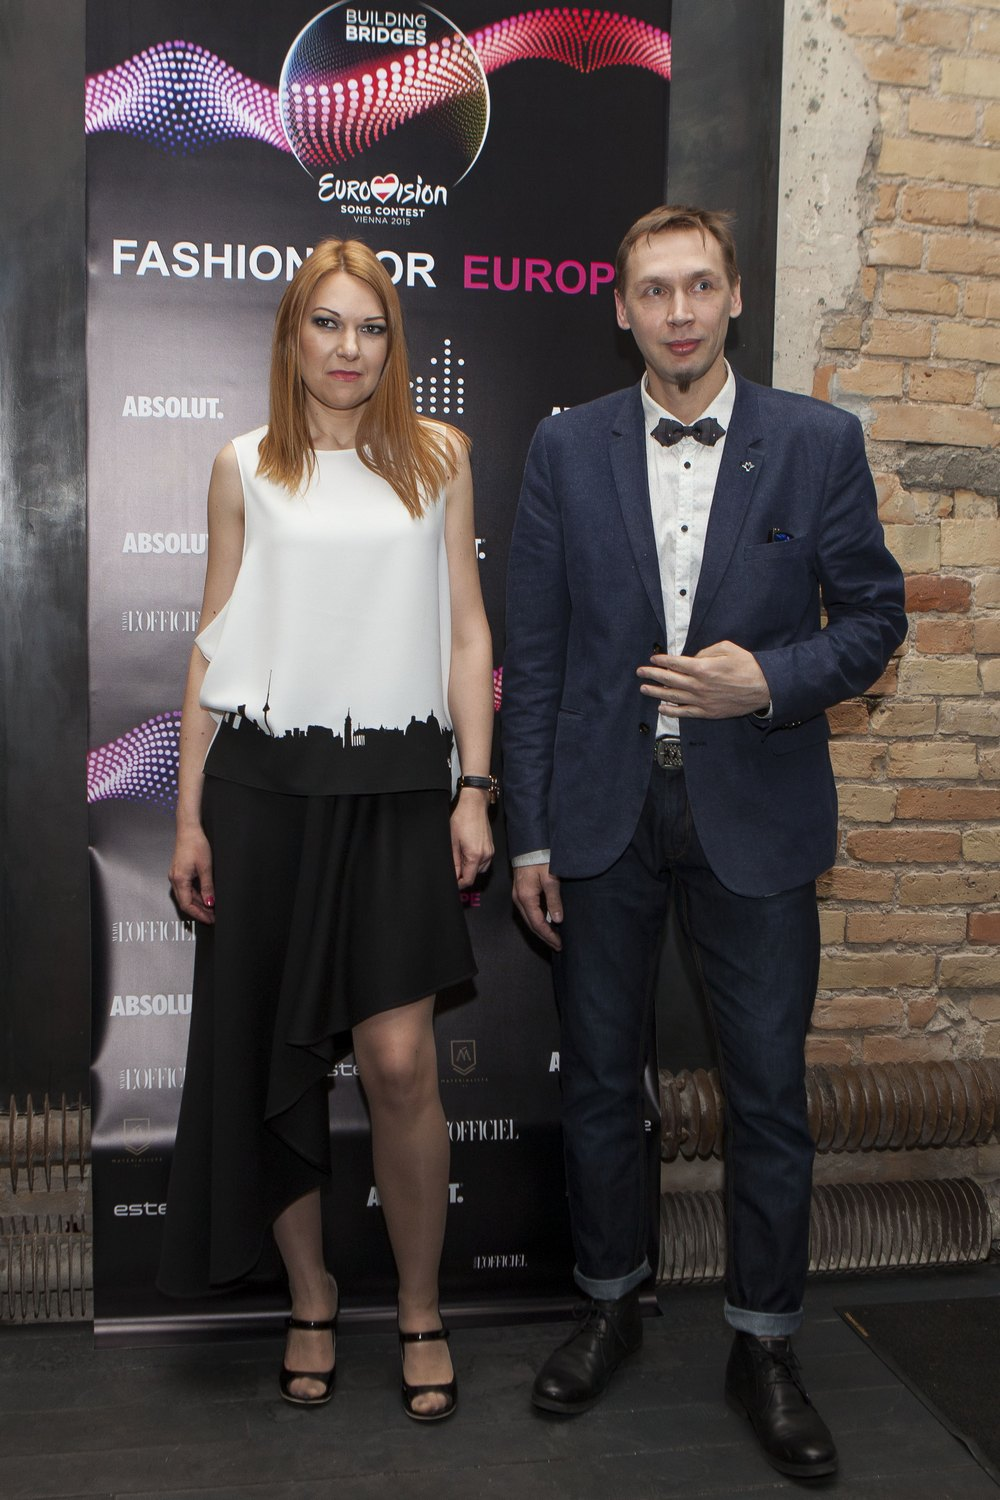 Daili & Fashion For Europe party  (16)